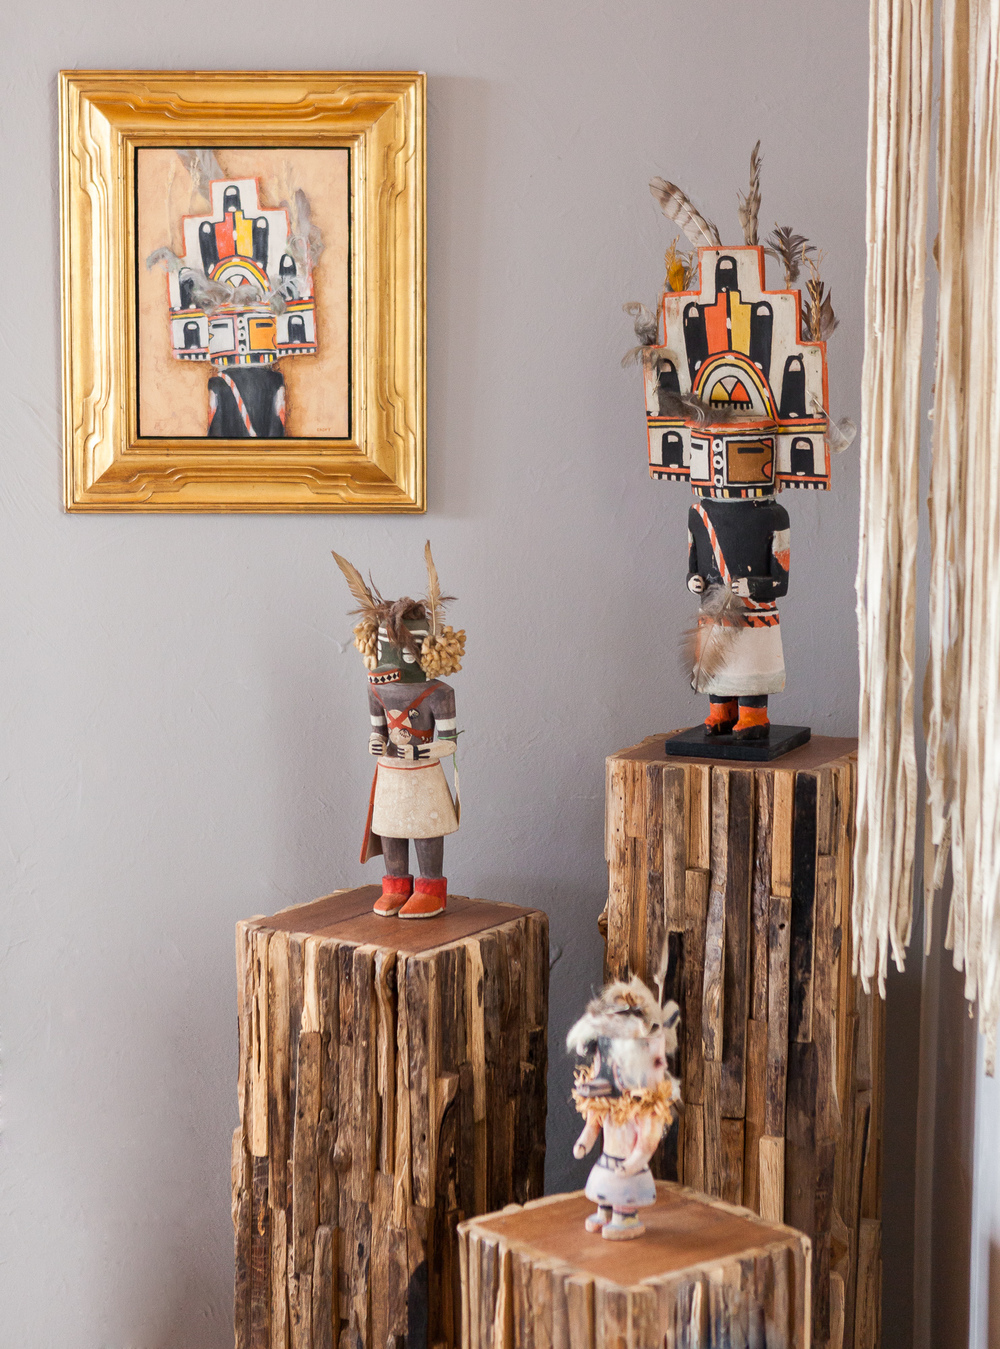 Santa Fe Style, New Mexico design, Native american art